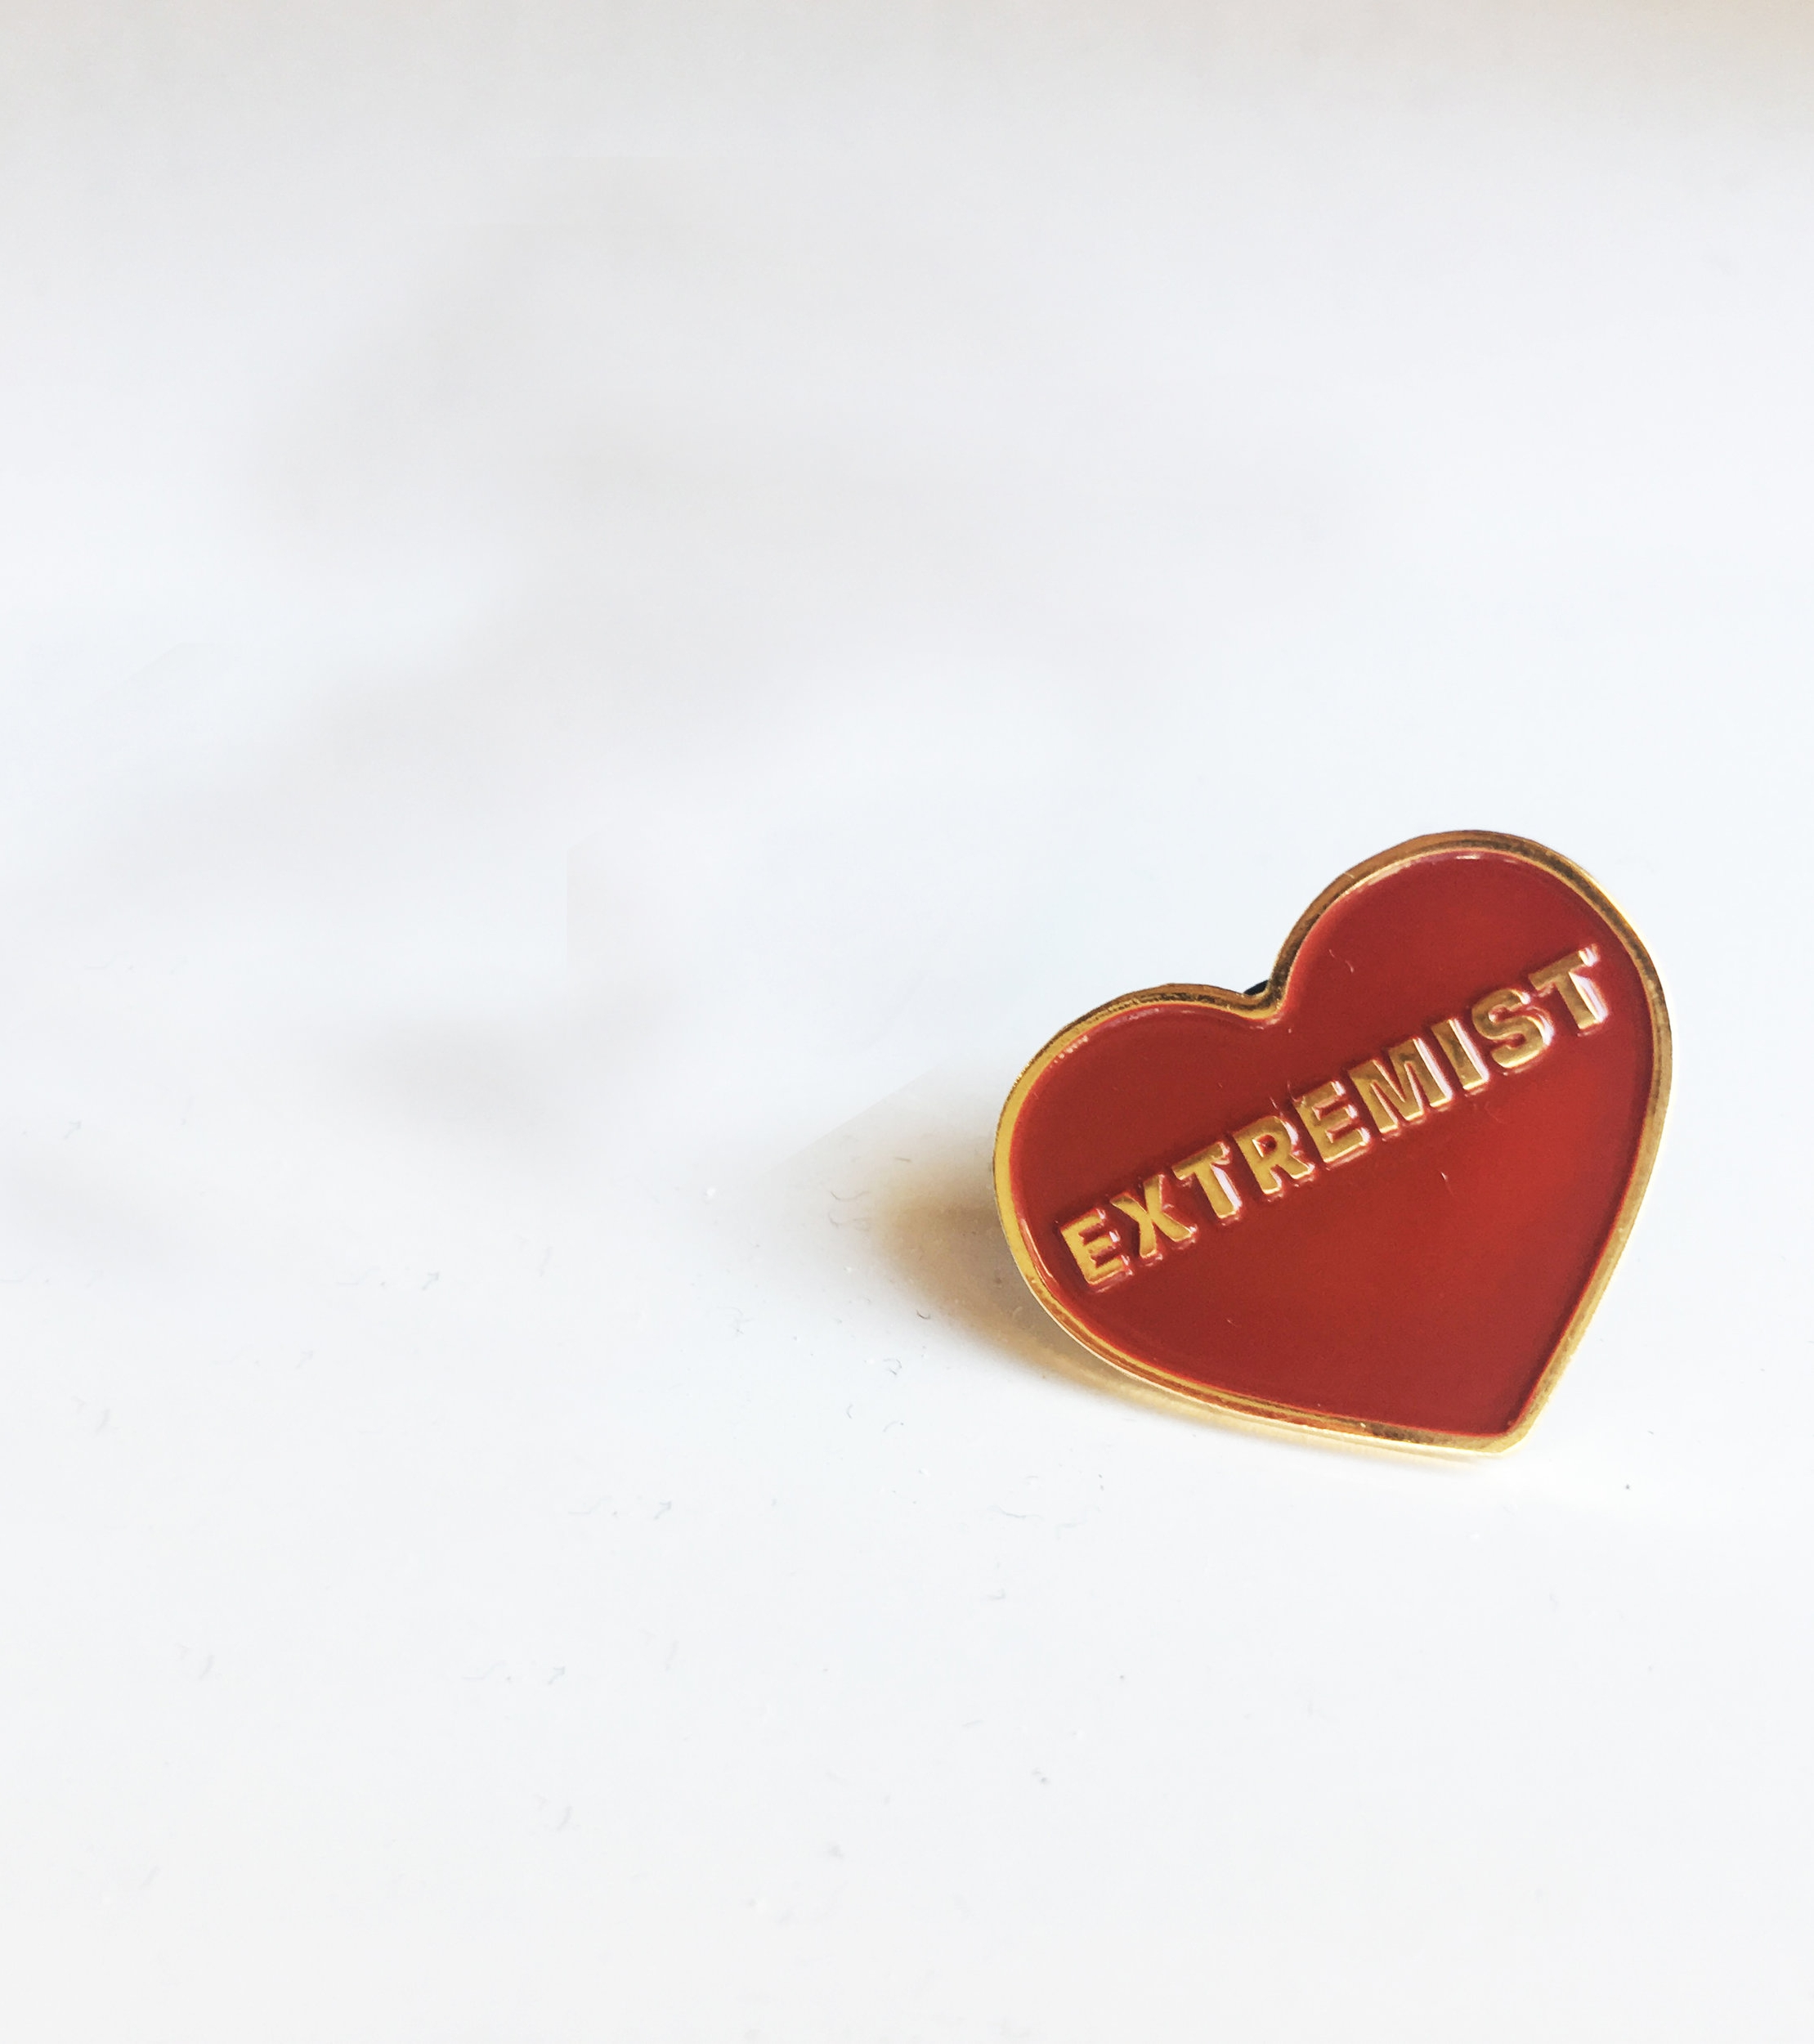 Pins are red and gold soft metal enamel with a hard rubber stopper and the website engraved on the back